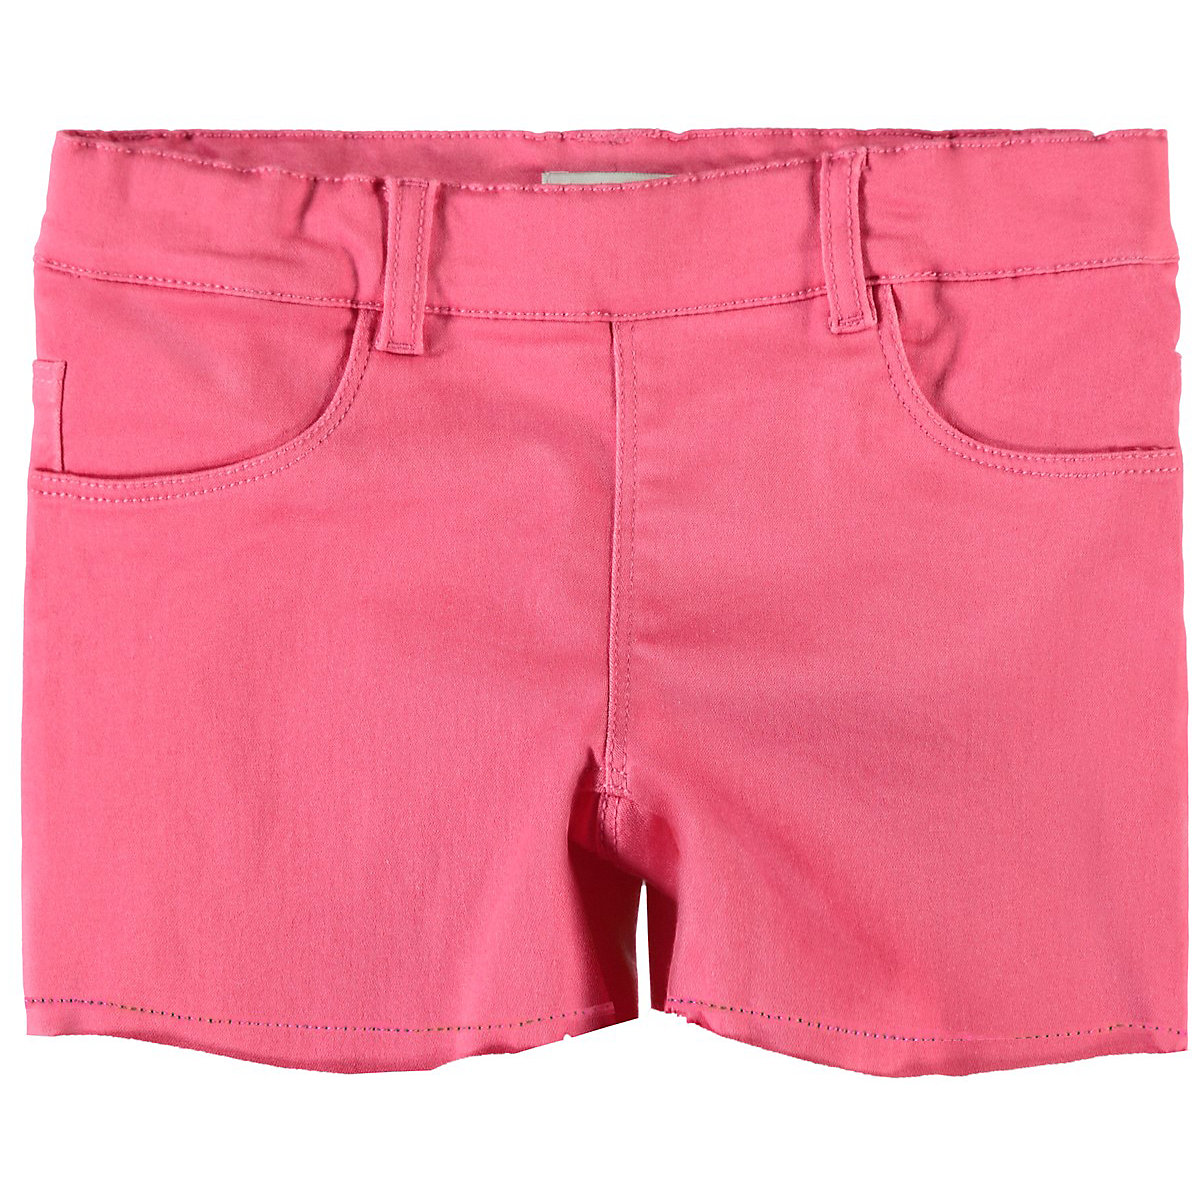 NAME IT Shorts 10626732 for boys and girls child sport for teenagers clothes Cotton Elastic Waist Girls